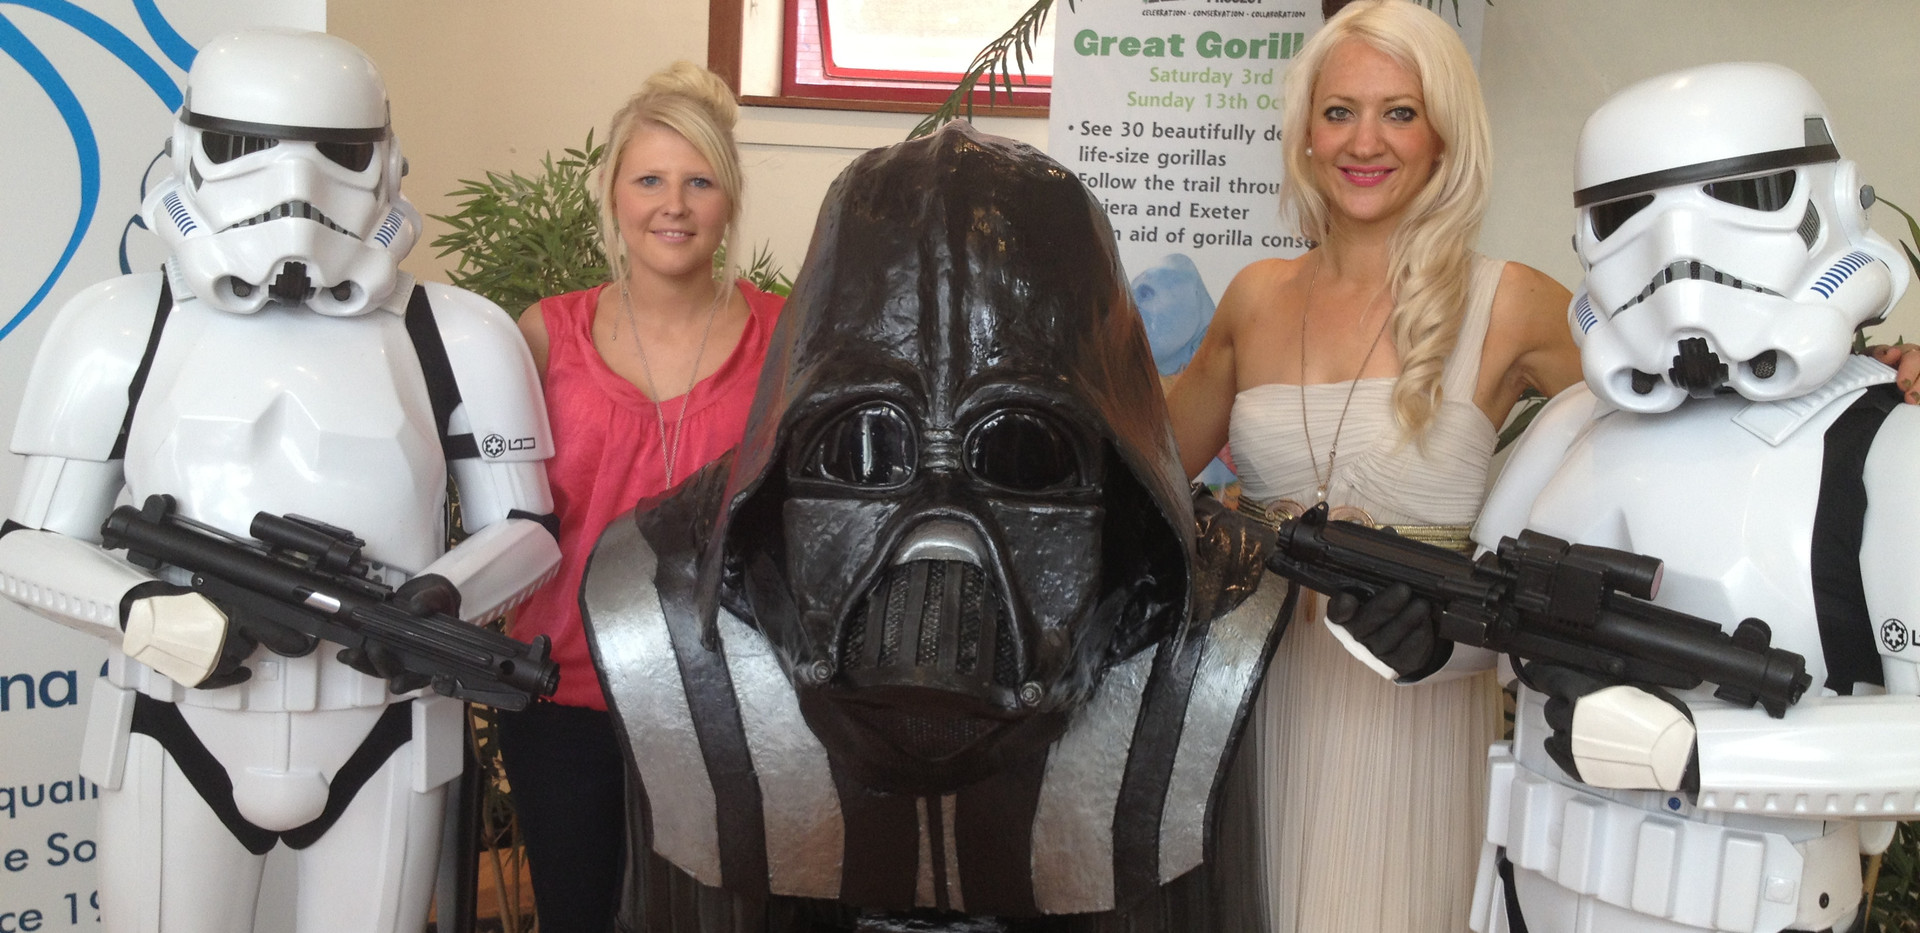 Darth Vader Gorilla with Storm Troopers